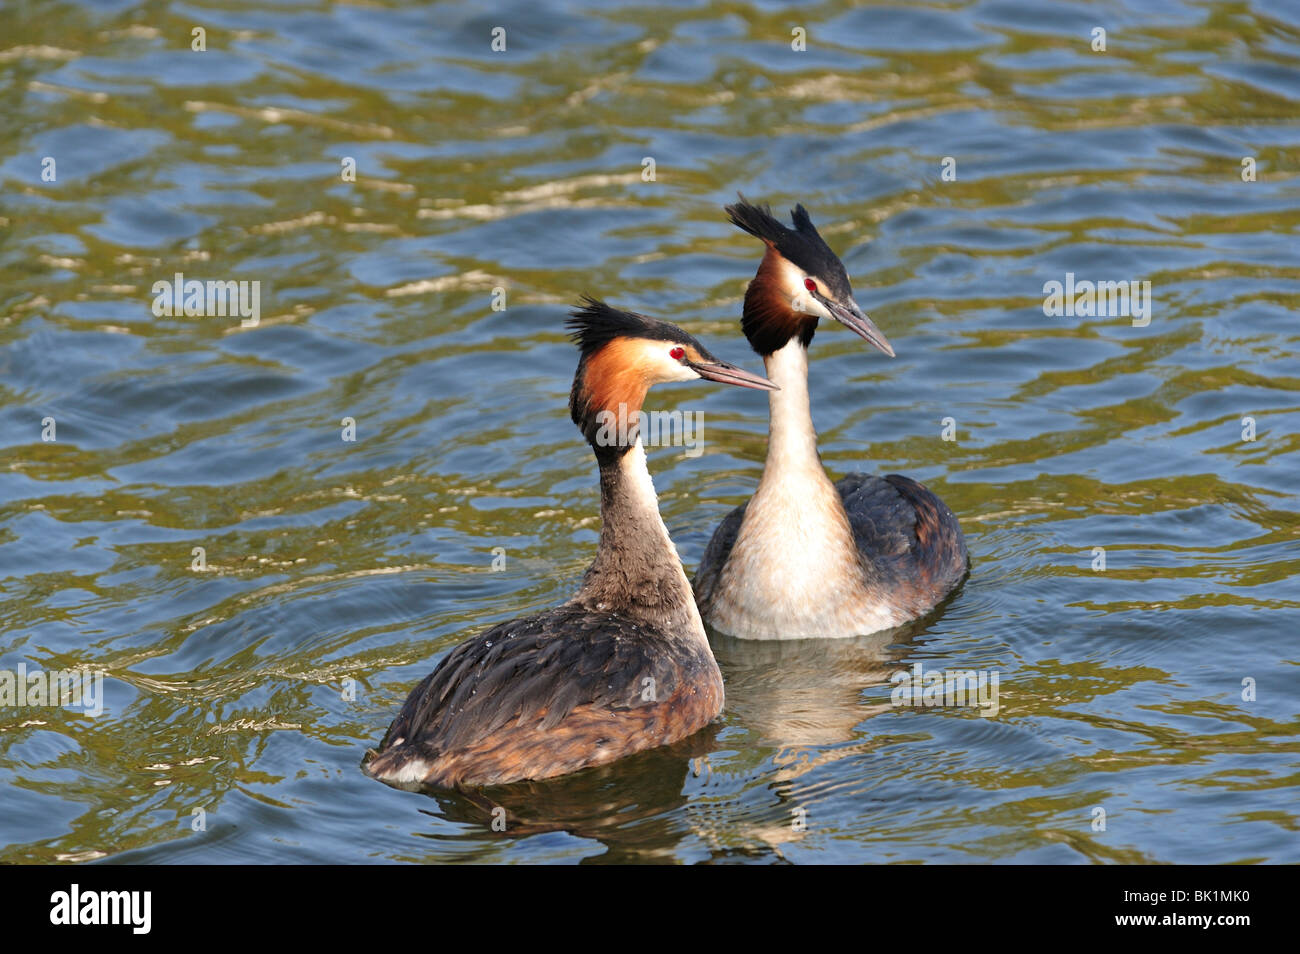 Great Crested Grebe Mating Dance - Stock Image